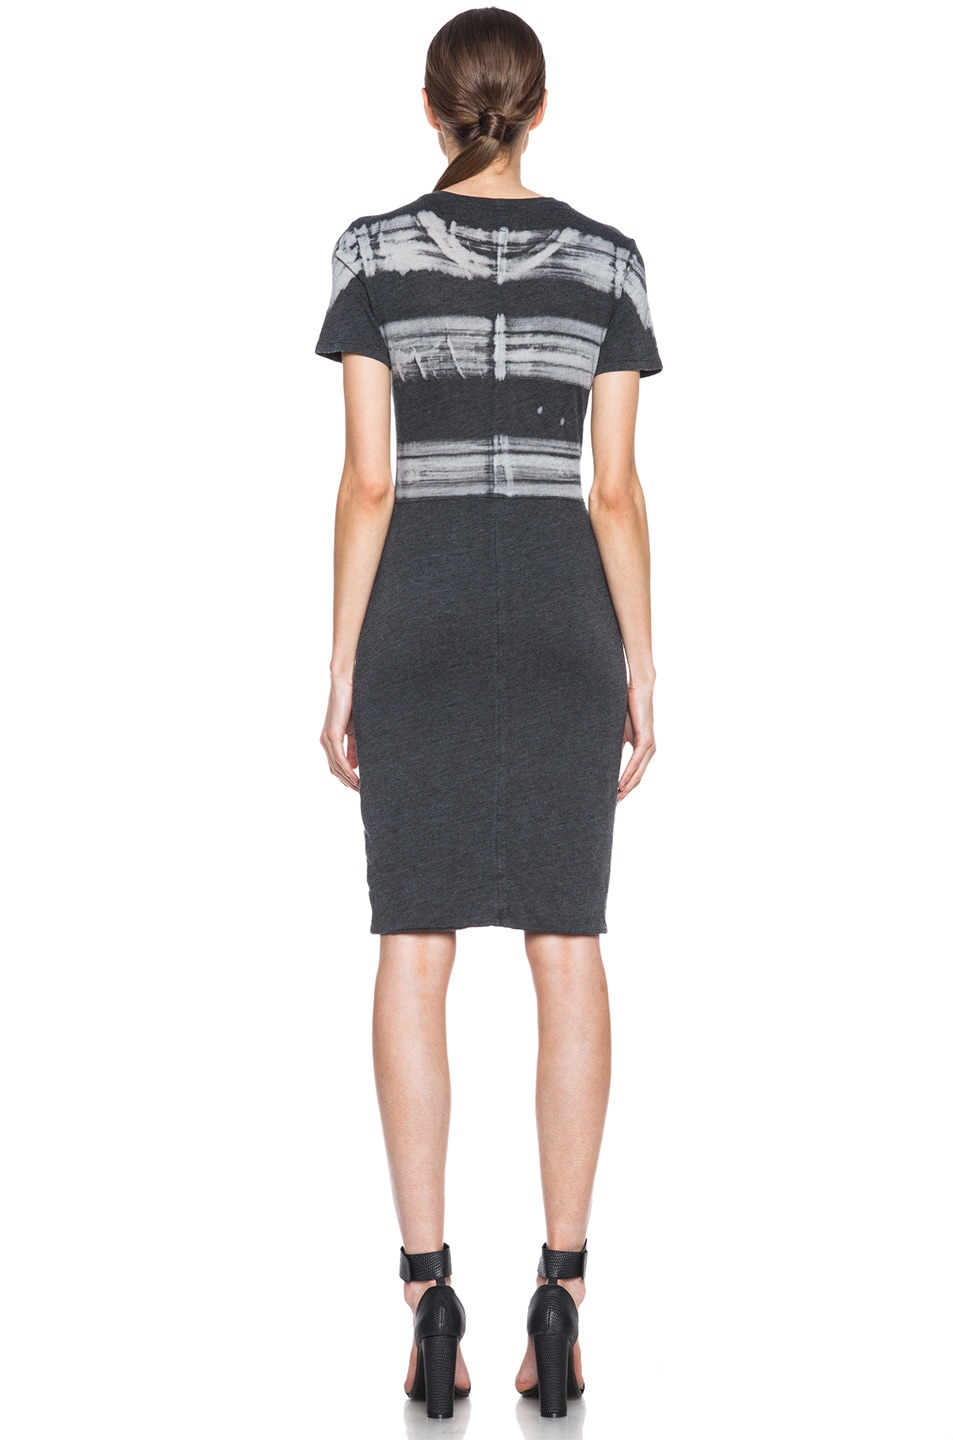 Image 4 of Raquel Allegra Cotton-Blend Cocktail Dress in Painter Stripe Black